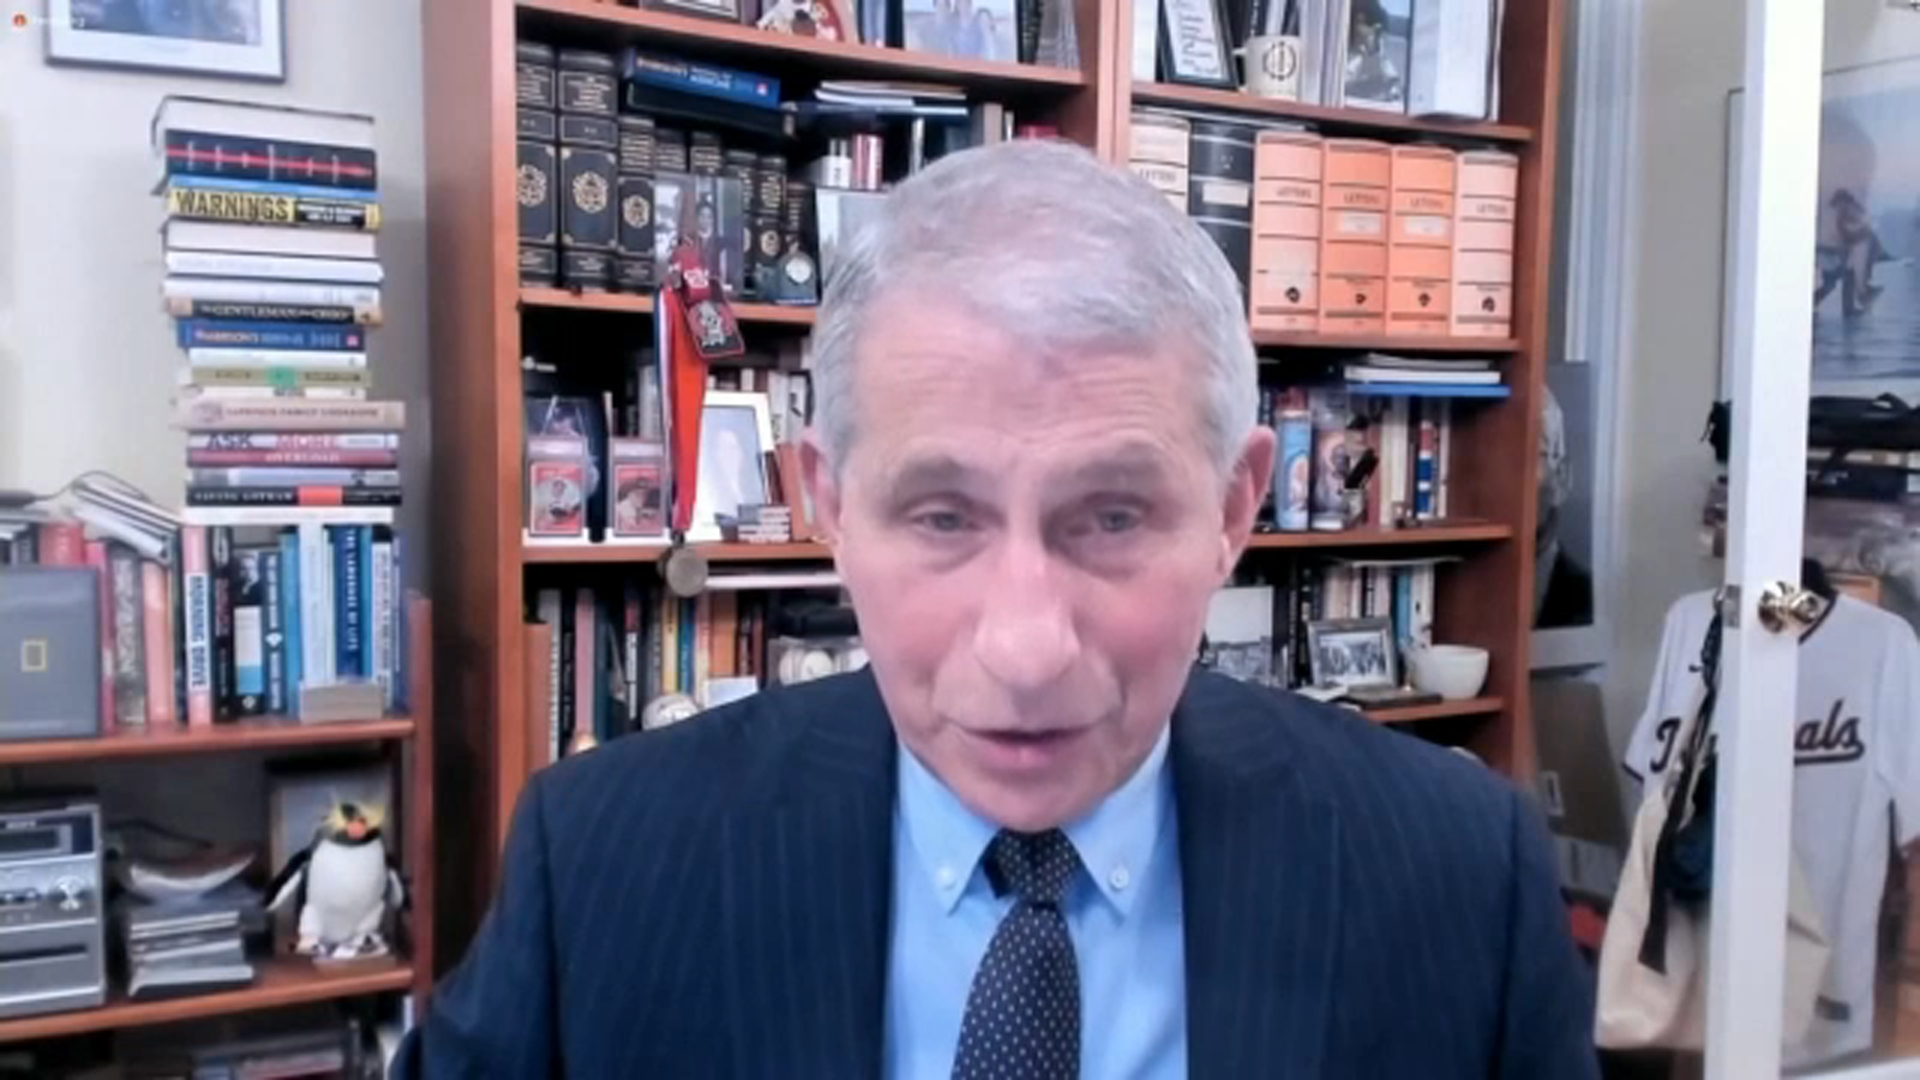 Dr. Fauci lays out President Biden's support for WHO after Trump criticism